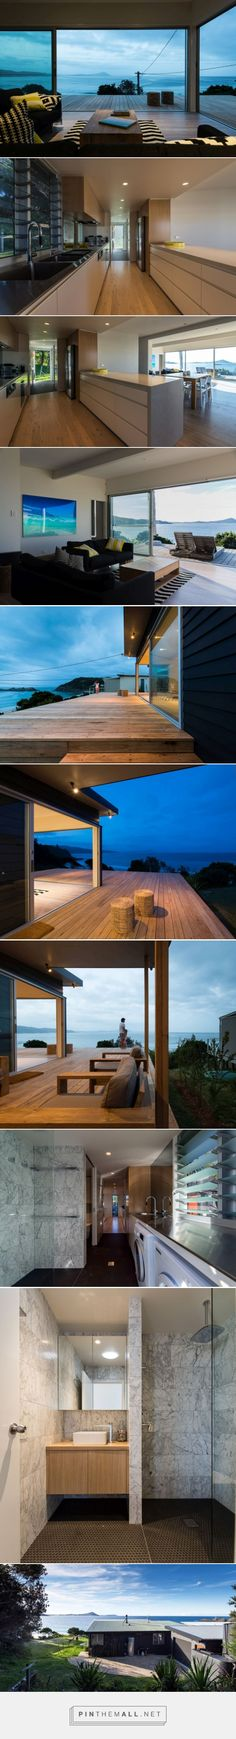 seal rocks house 9 by bourne + blue architecture - created on 2015-09-15 01:48:30